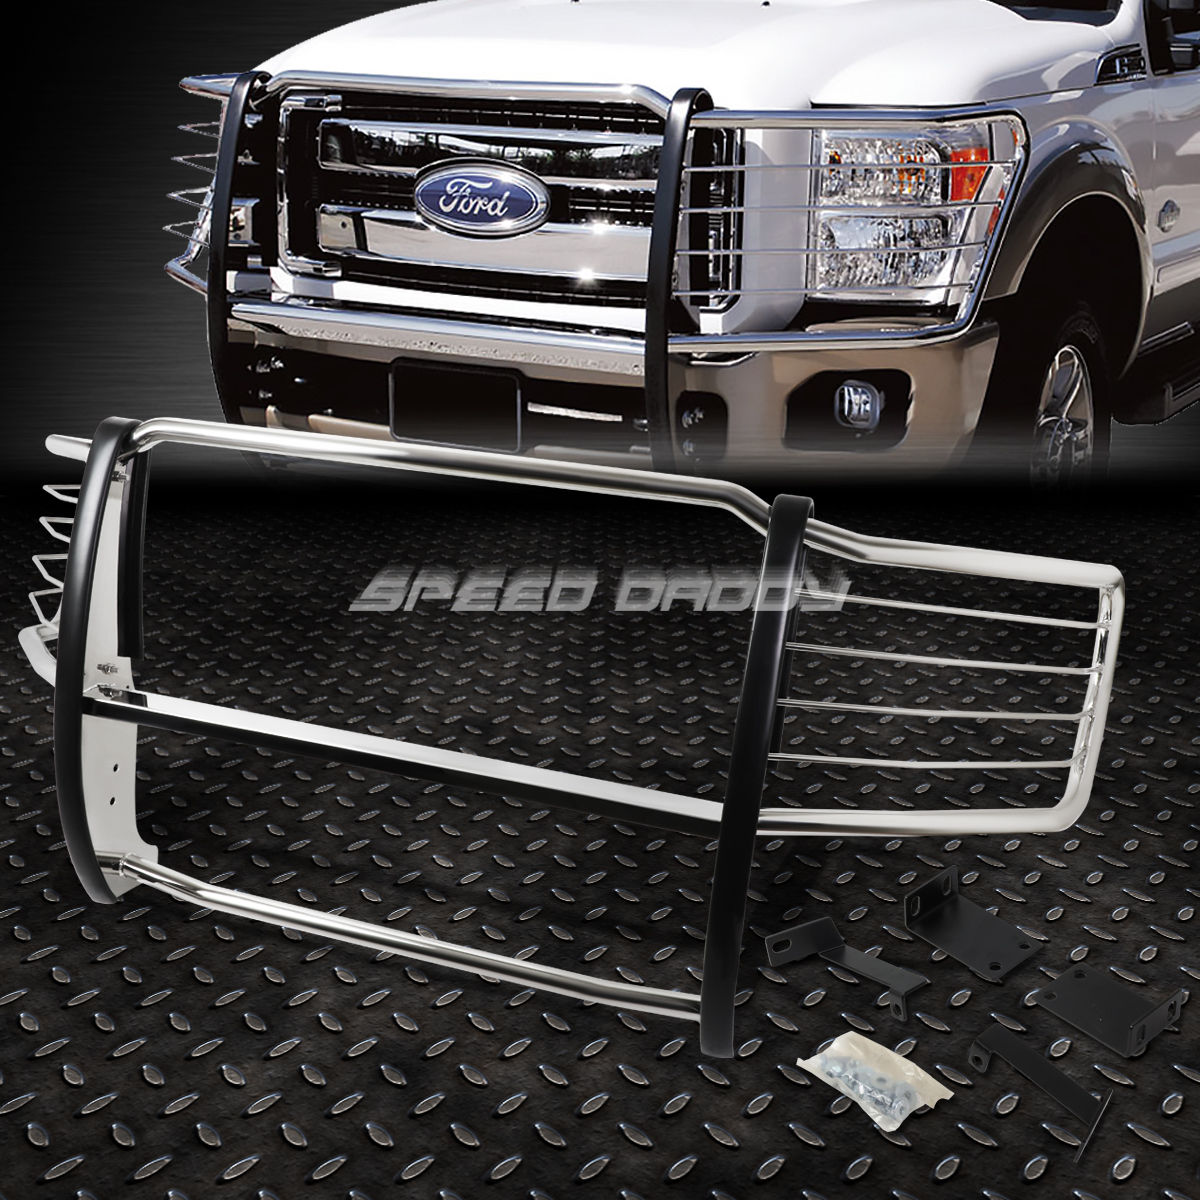 グリル クロムステンレスフロントバンパーグリルガード08-10 F250-F550 SUPERDUTY CHROME STAINLESS STEEL FRONT BUMPER GRILL GUARD FOR 08-10 F250-F550 SUPERDUTY